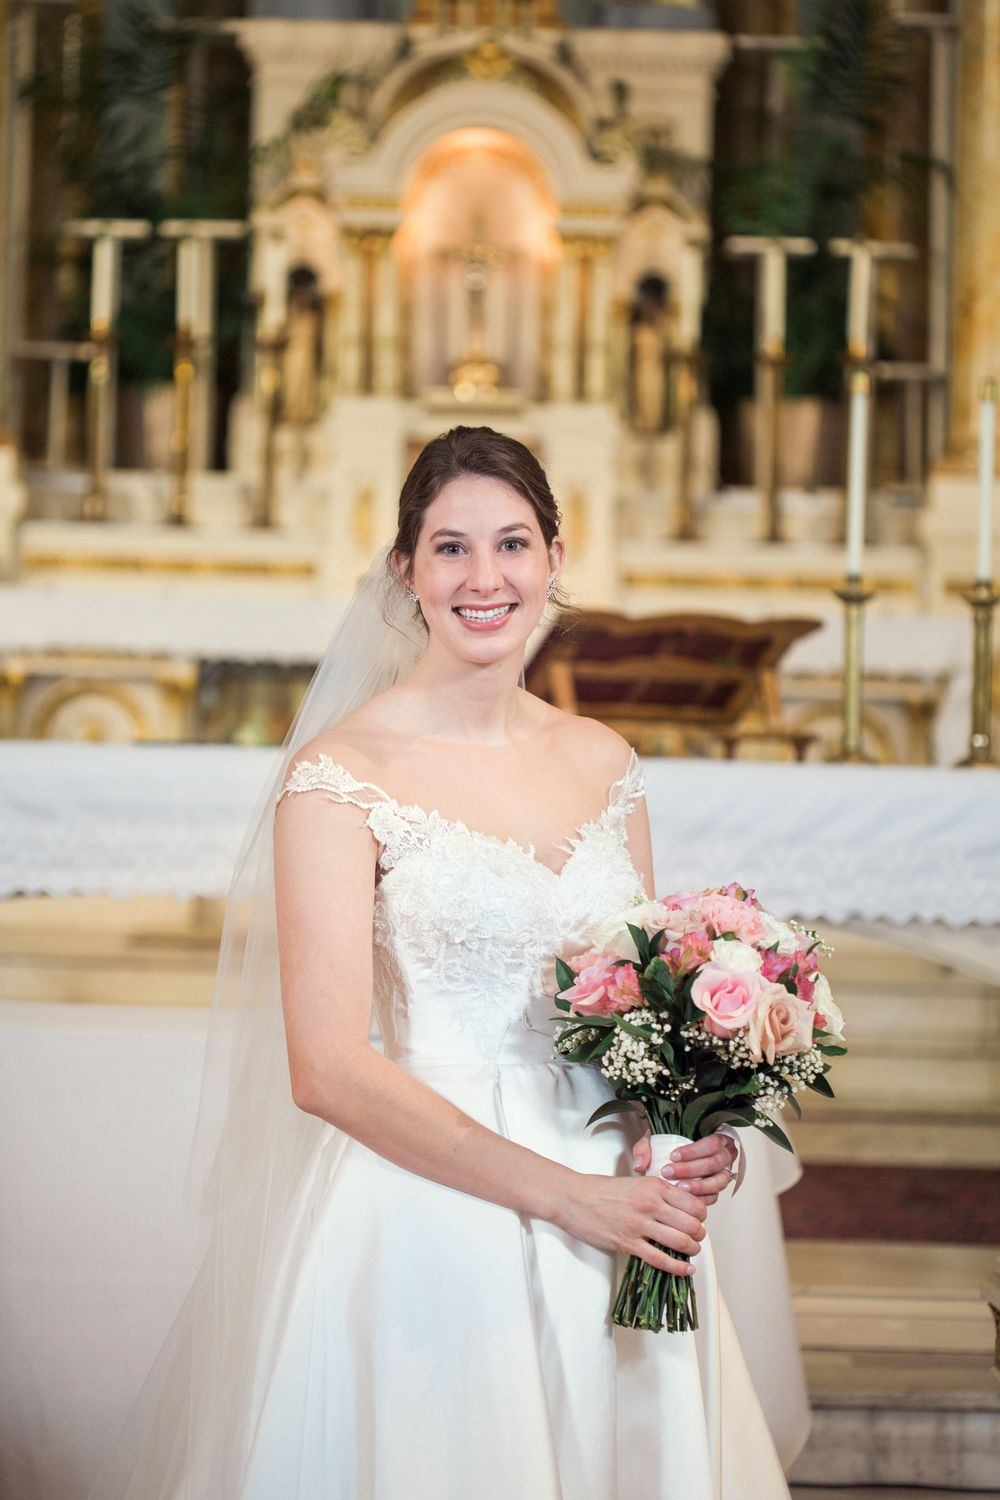 Kansas City Bride in Our Lady of Sorrows church